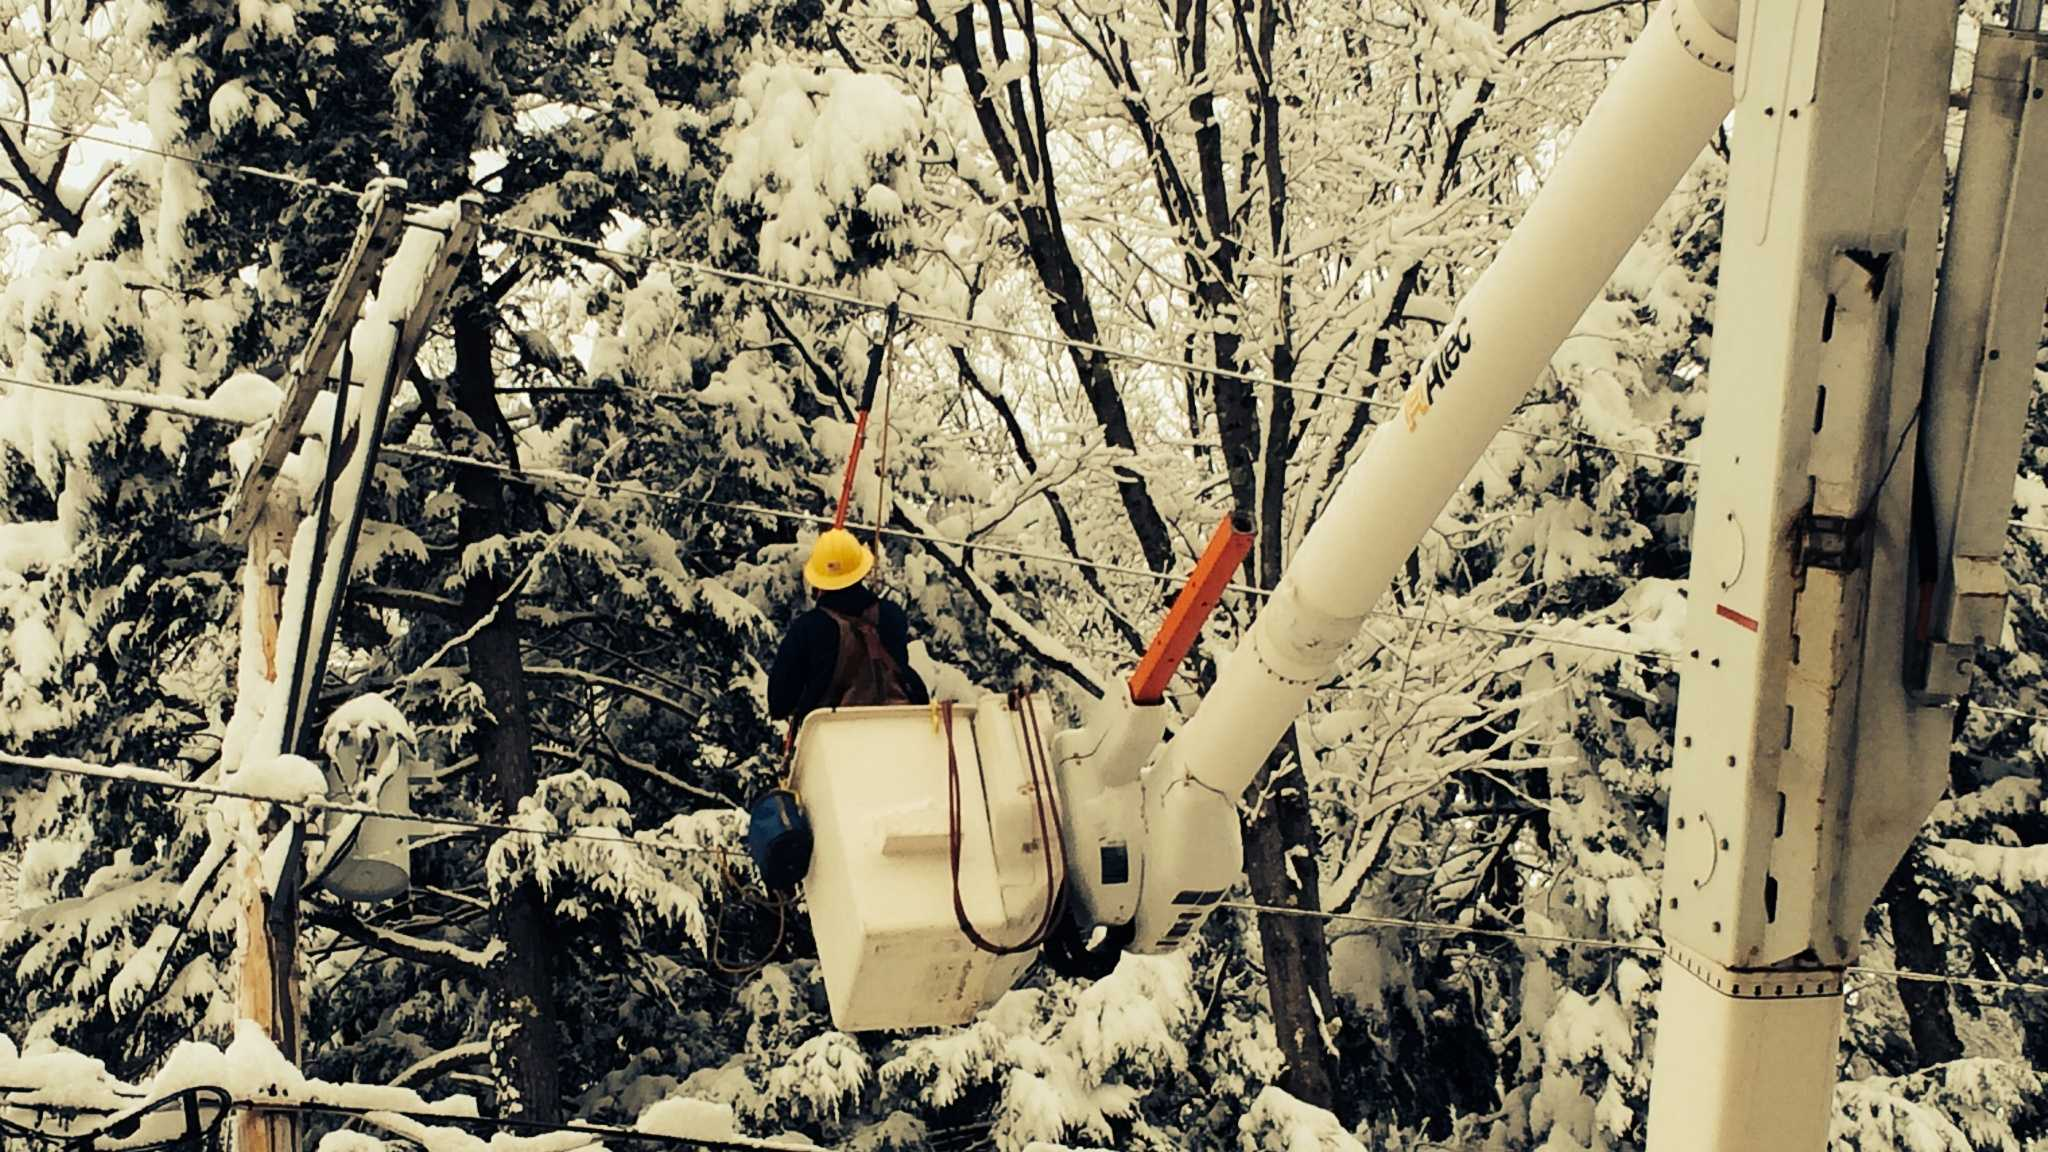 Provided by Green Mountain Spokesperson Dorothy Schnure